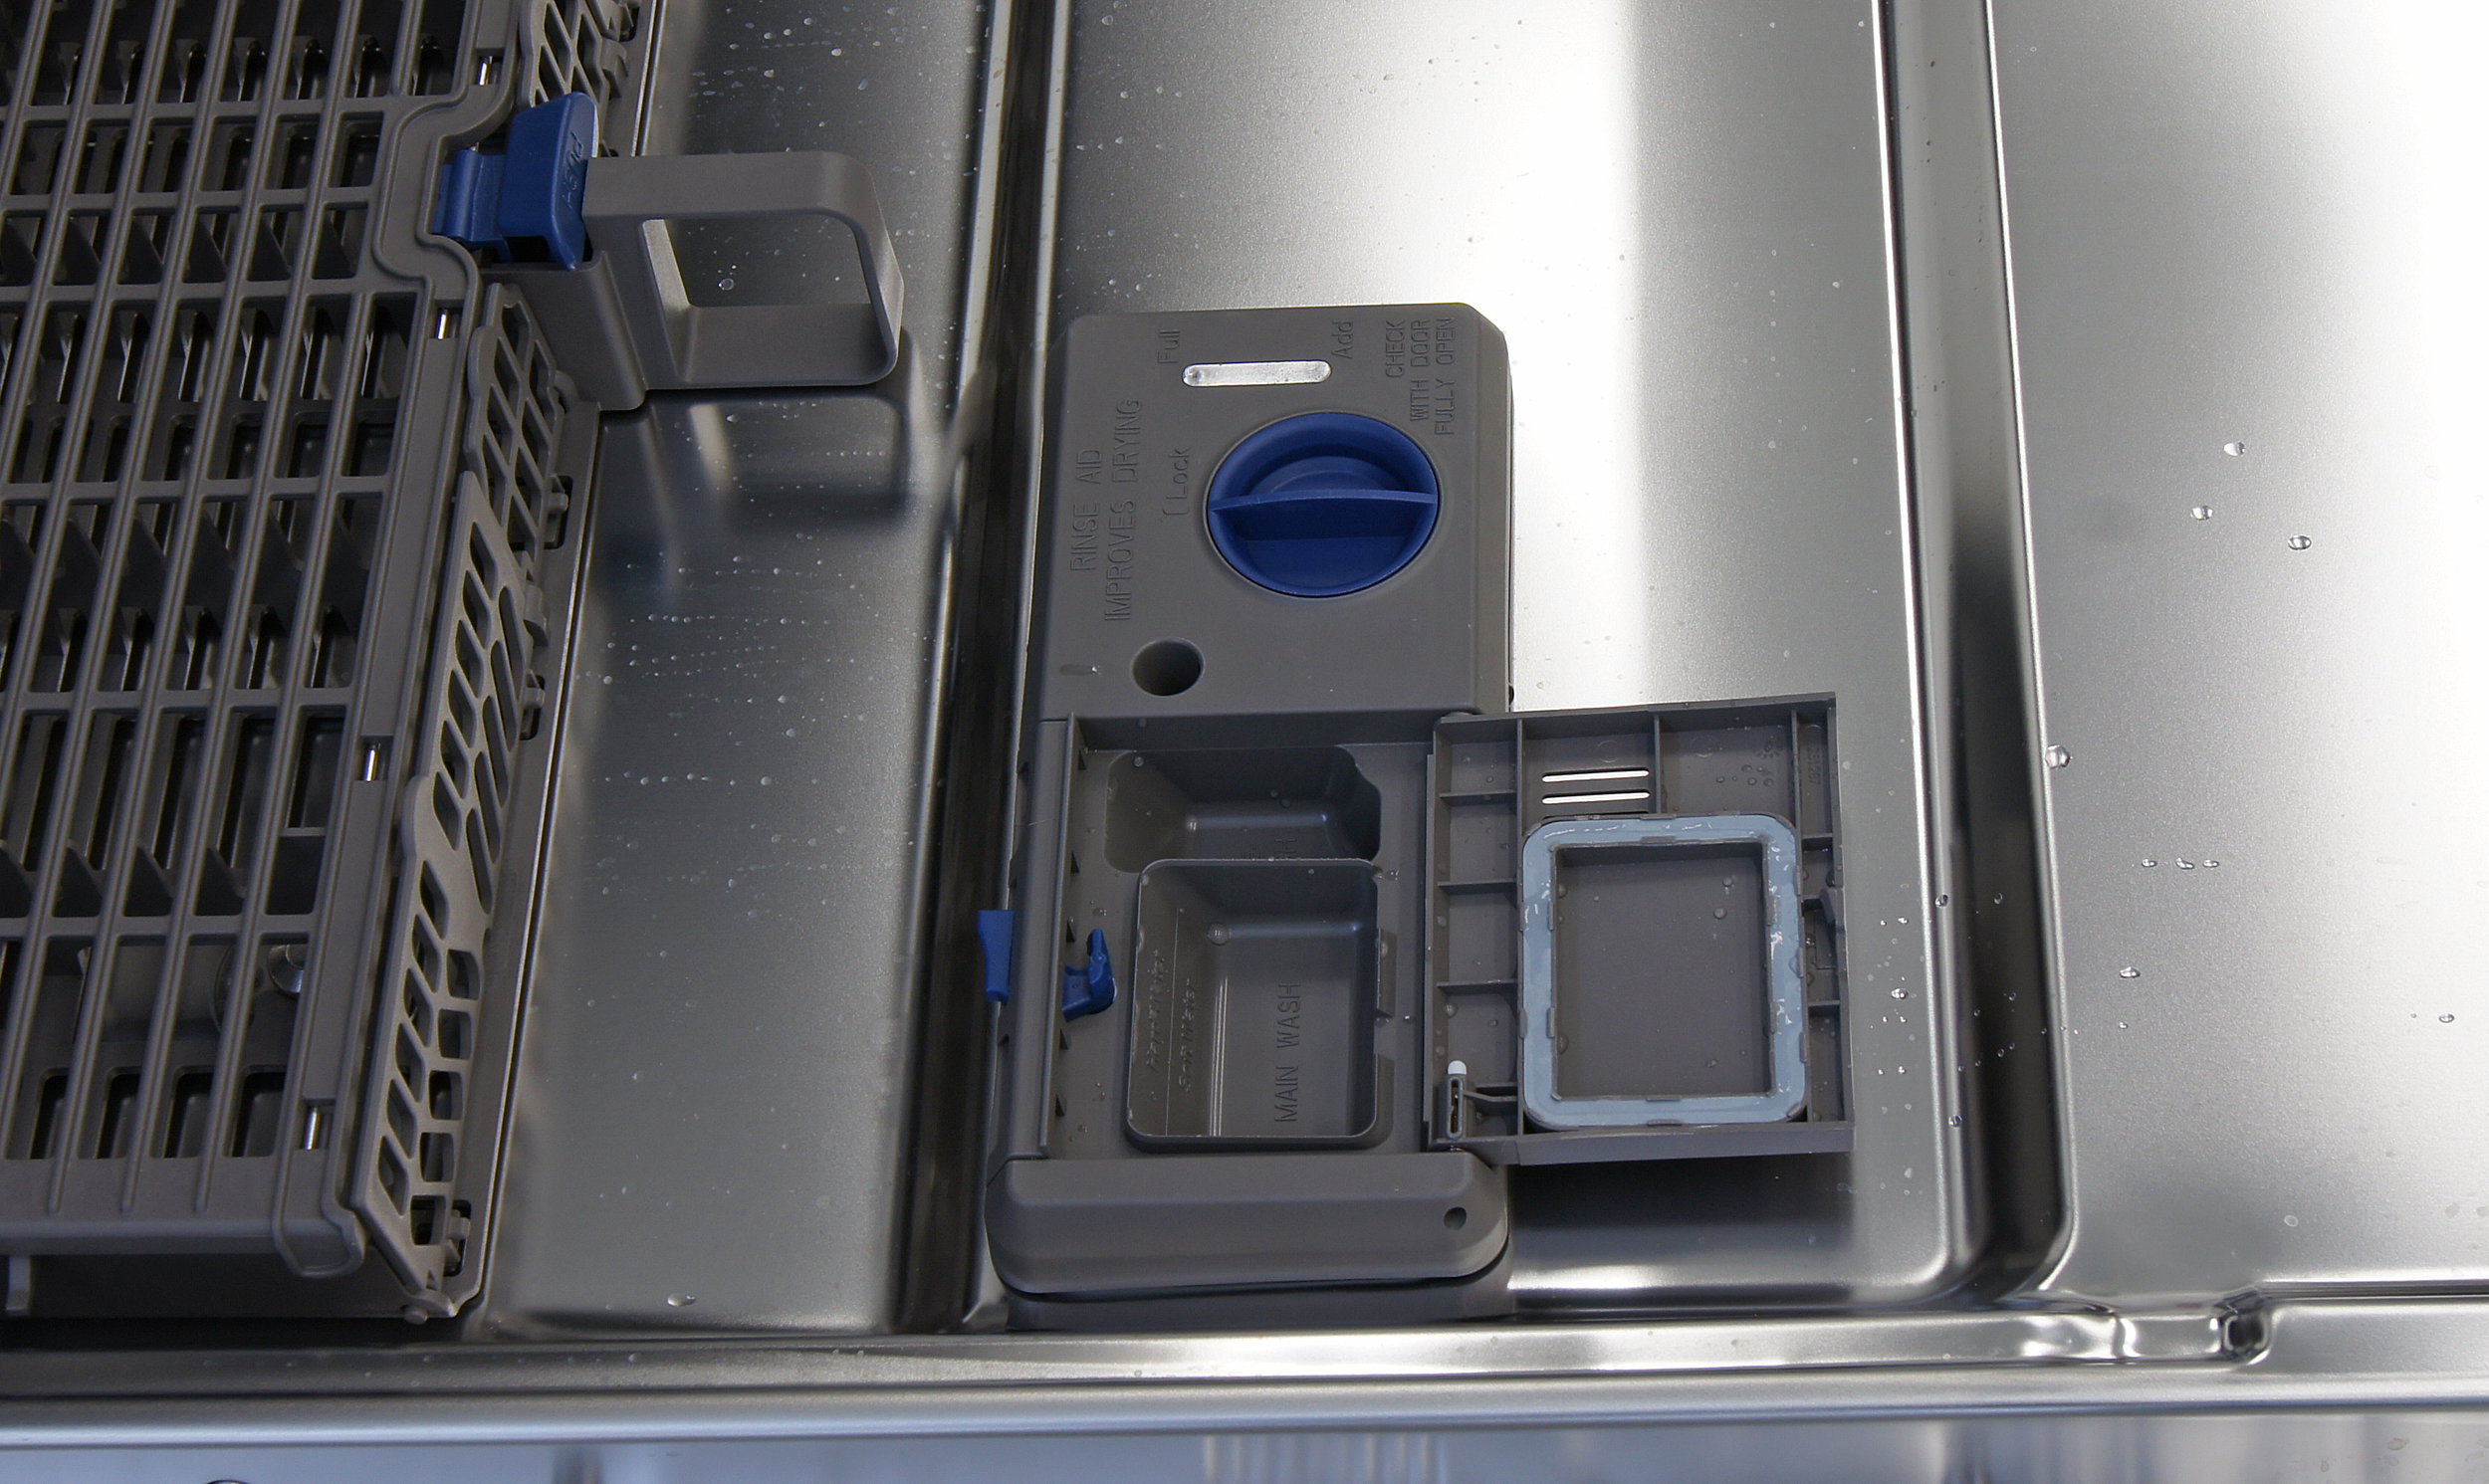 Whirlpool detergent dispenser